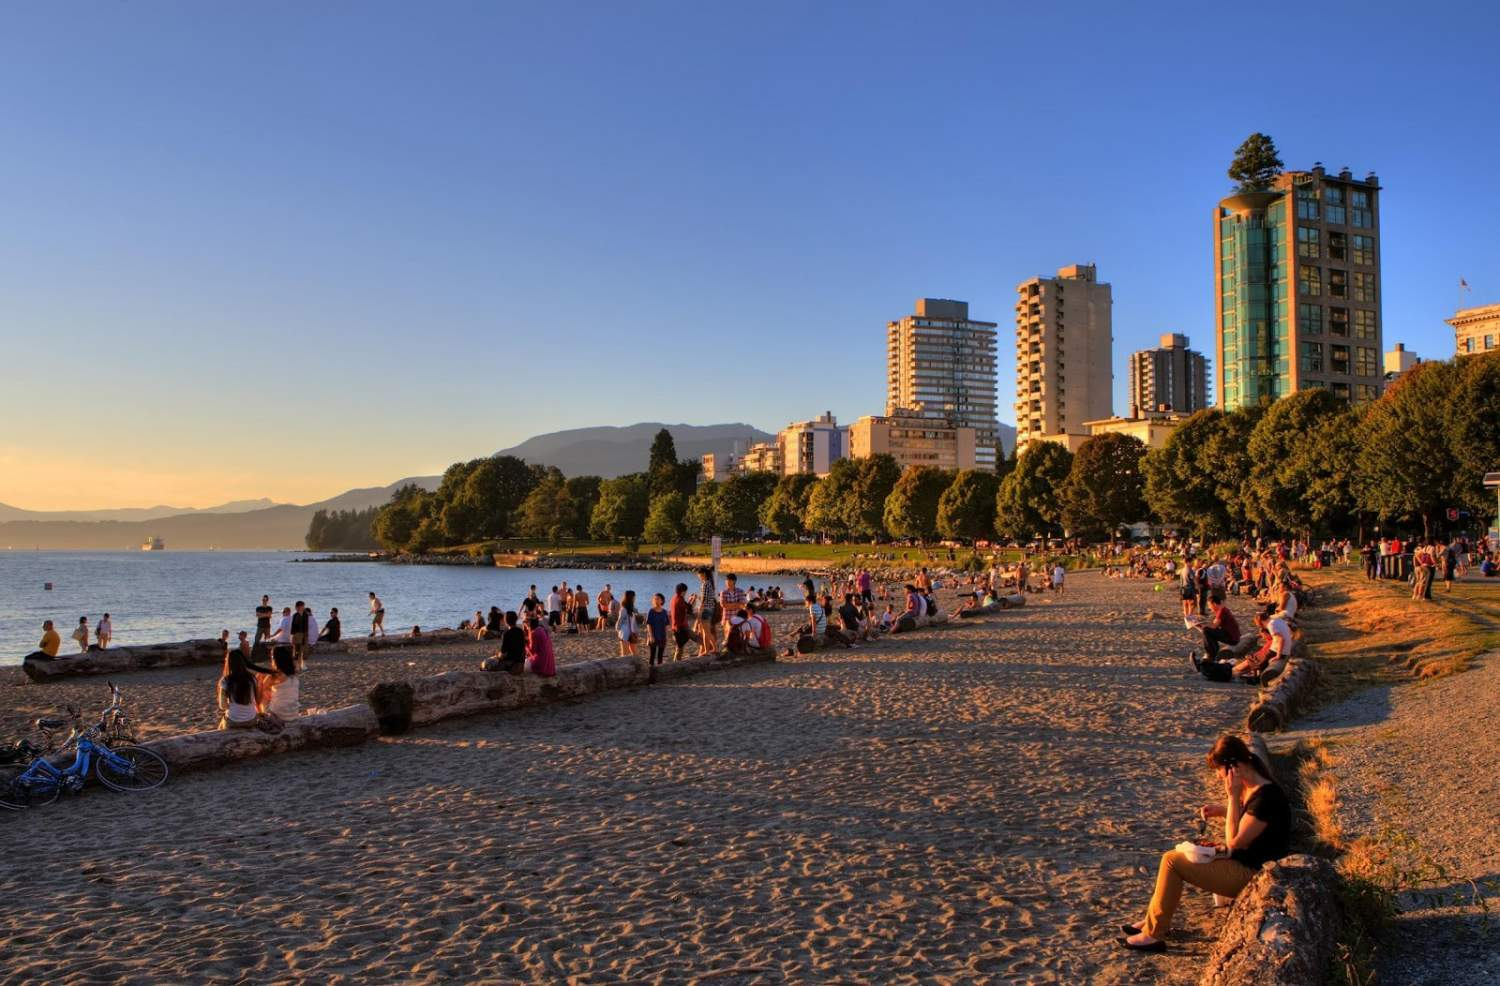 Second beach in Vancouver